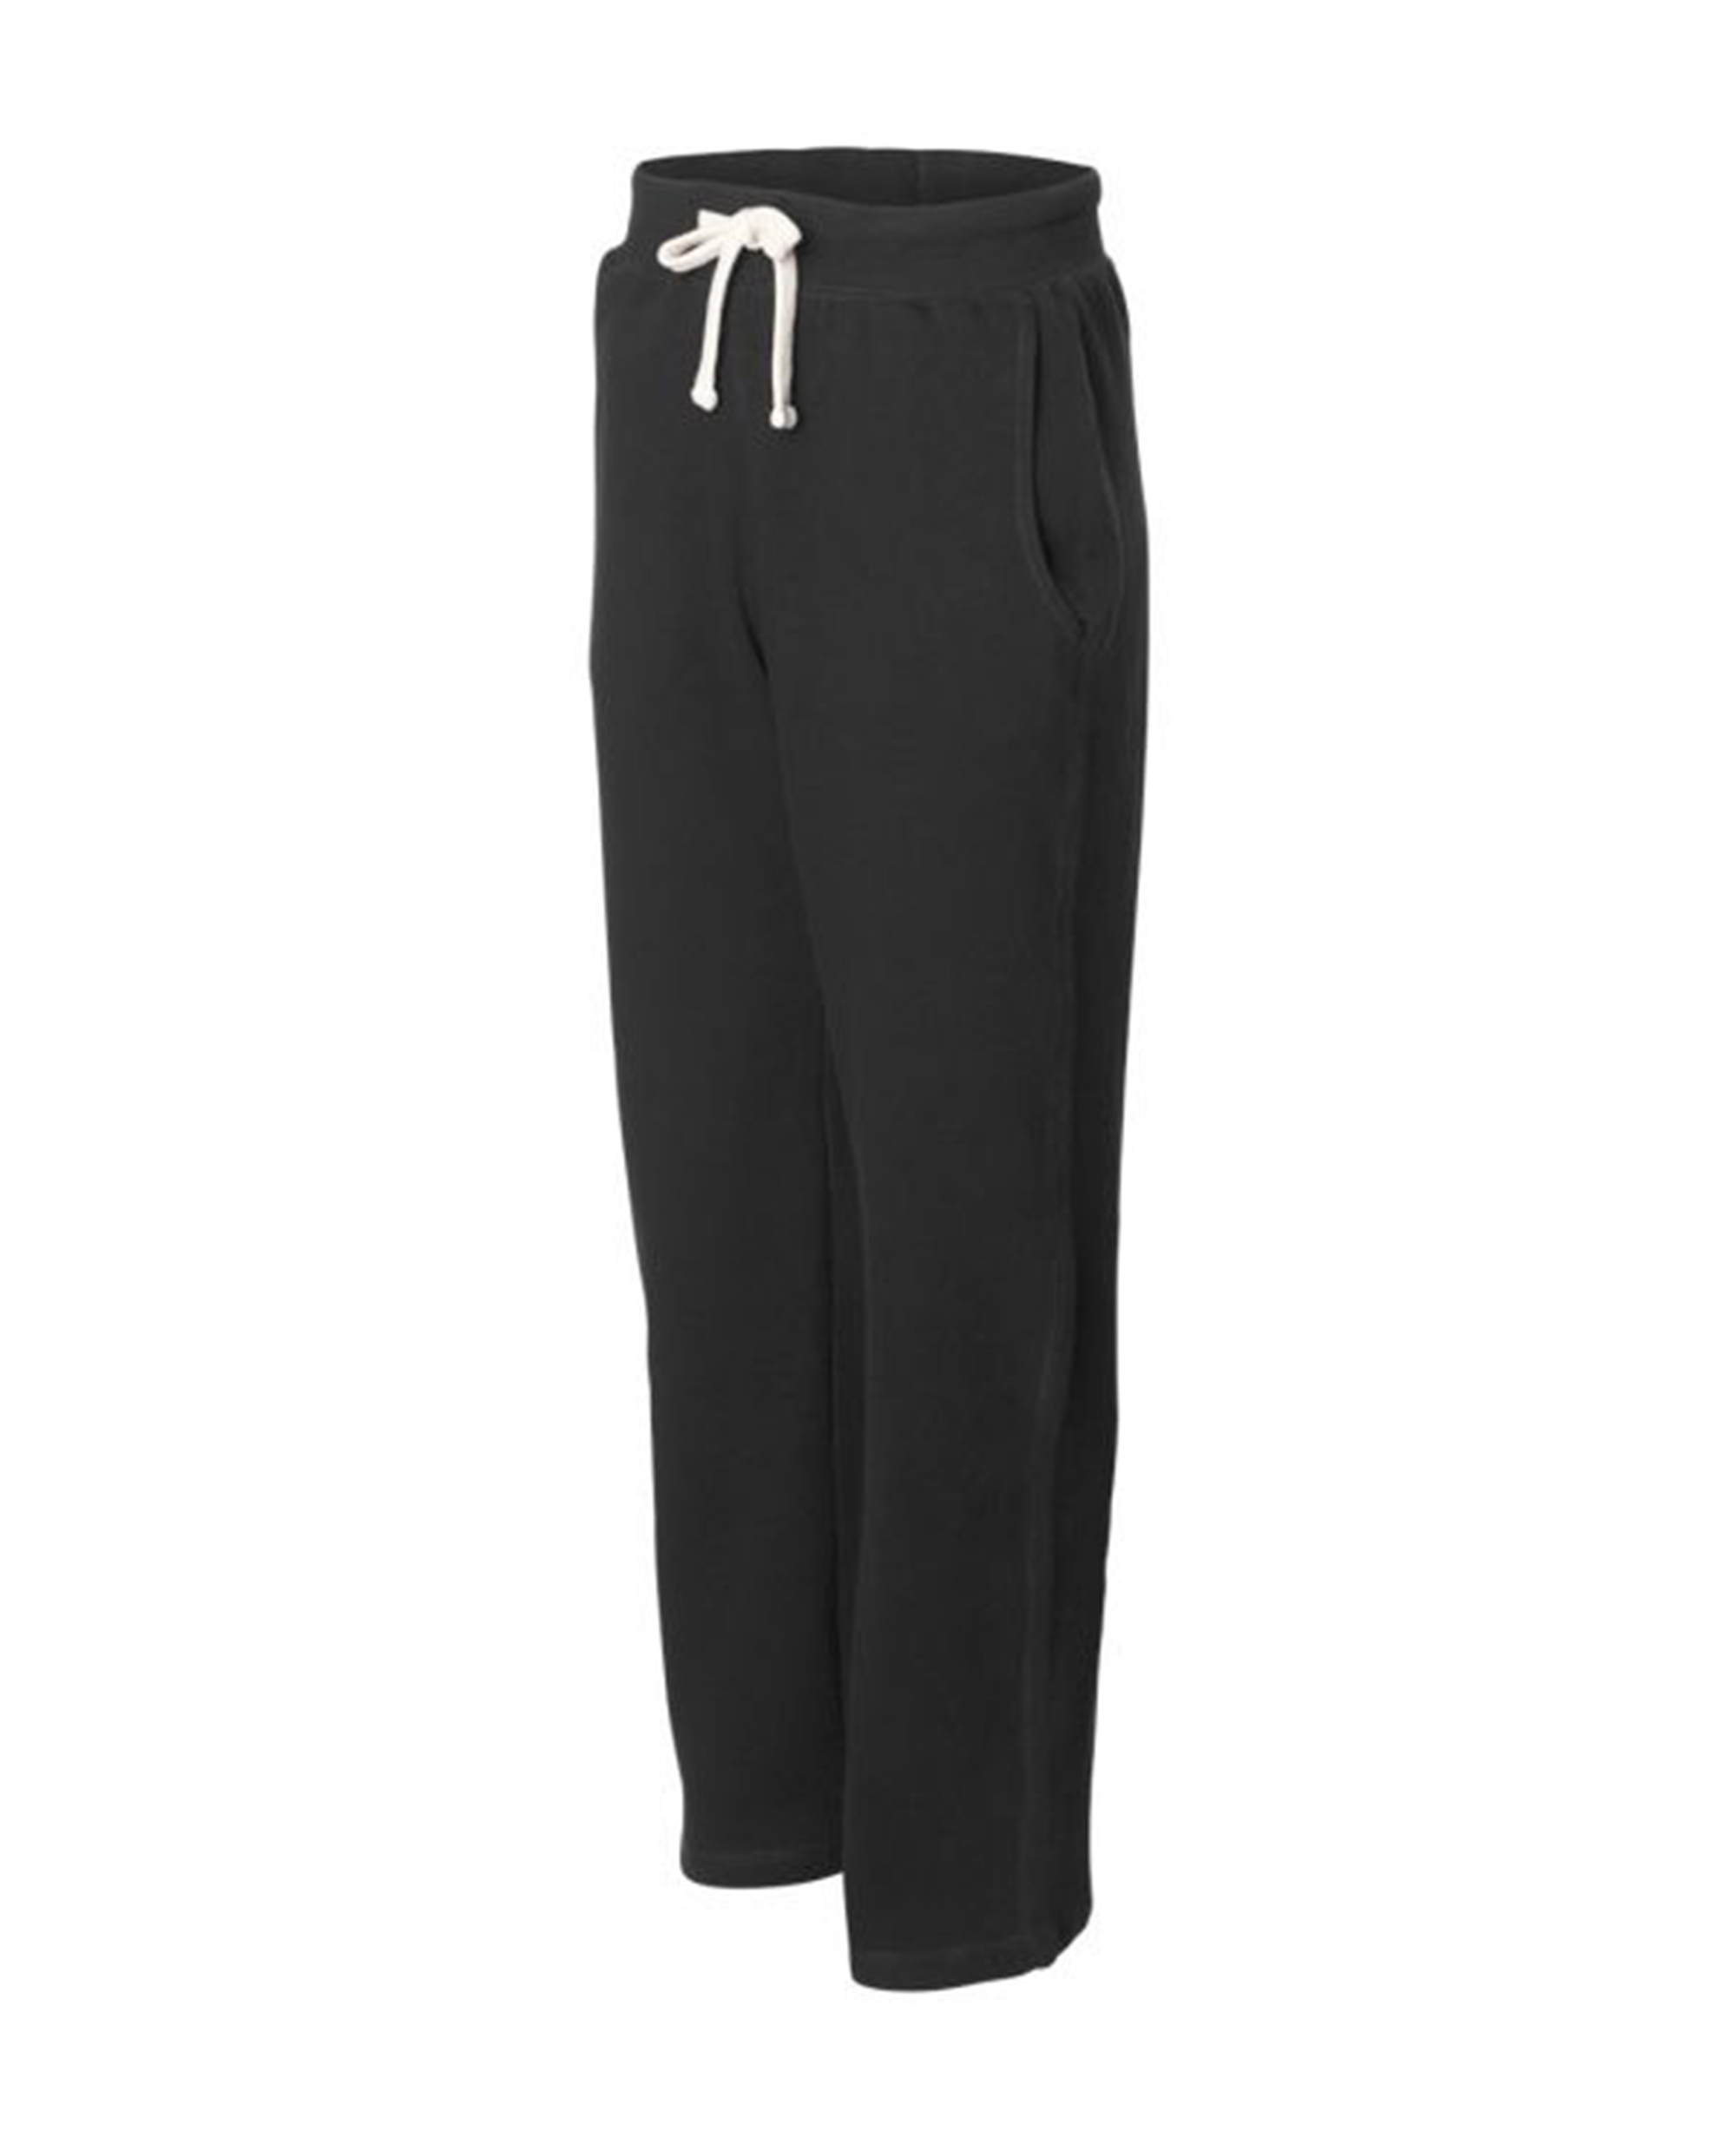 Adult Relaxed Pants in Black - Pants - Weatherproof - BRANMA